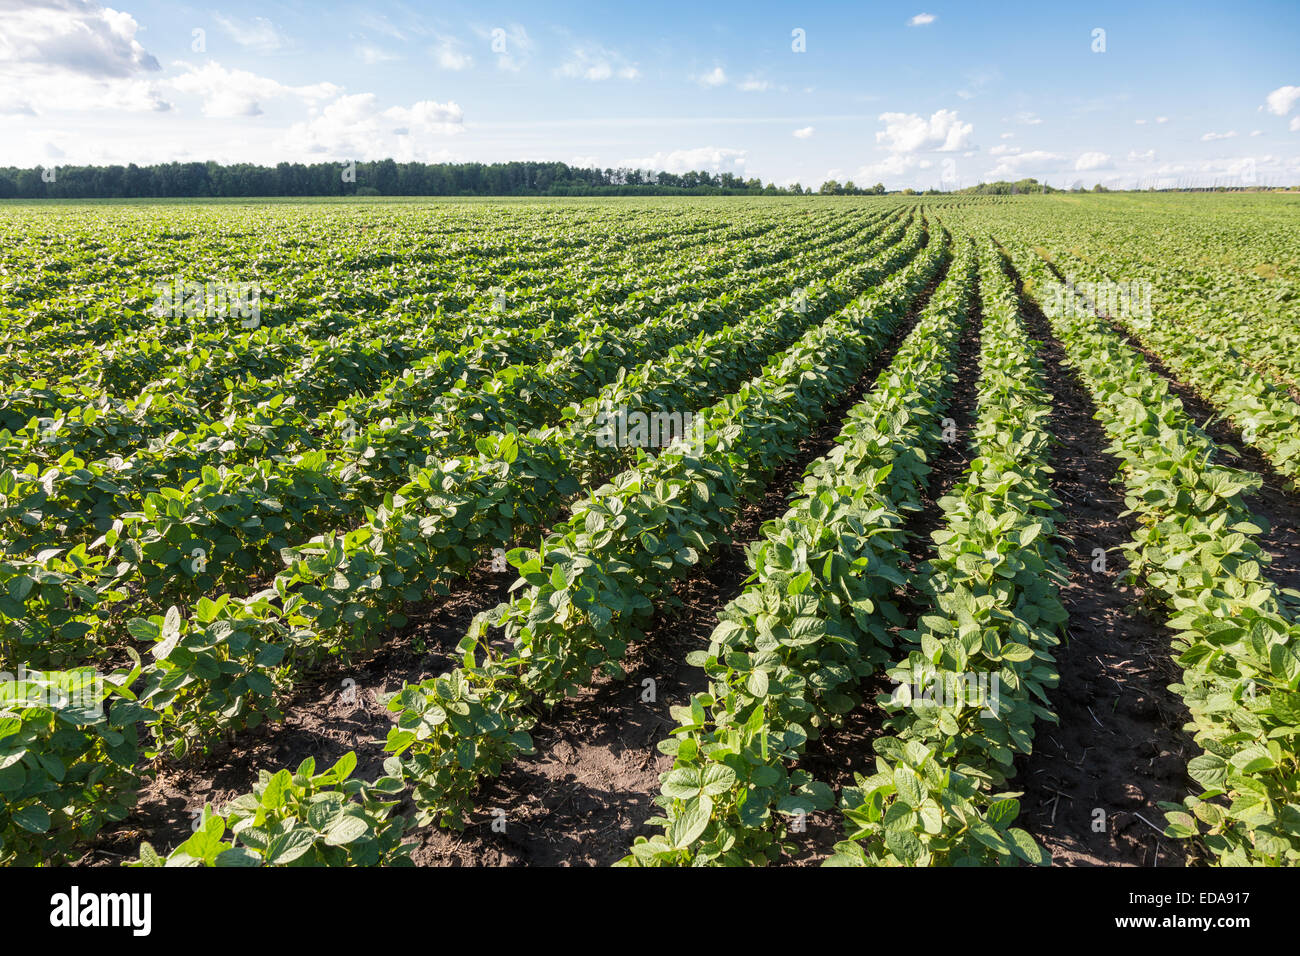 rows of young soybean plants in a field stock photo 77058611 alamy